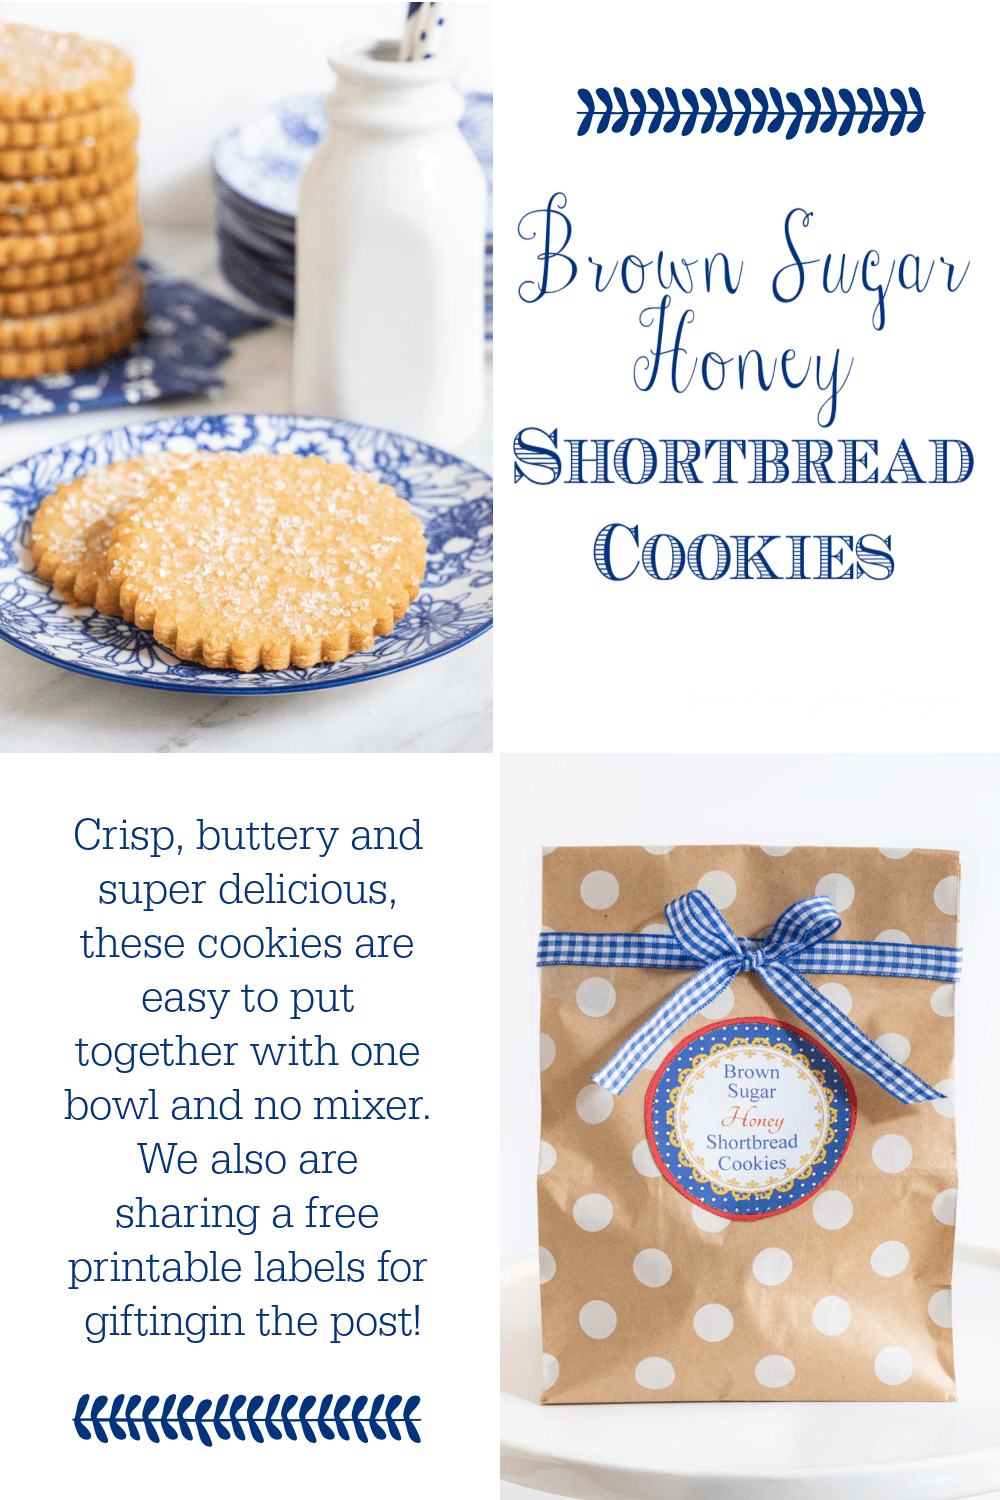 Brown Sugar Honey Shortbread Cookies